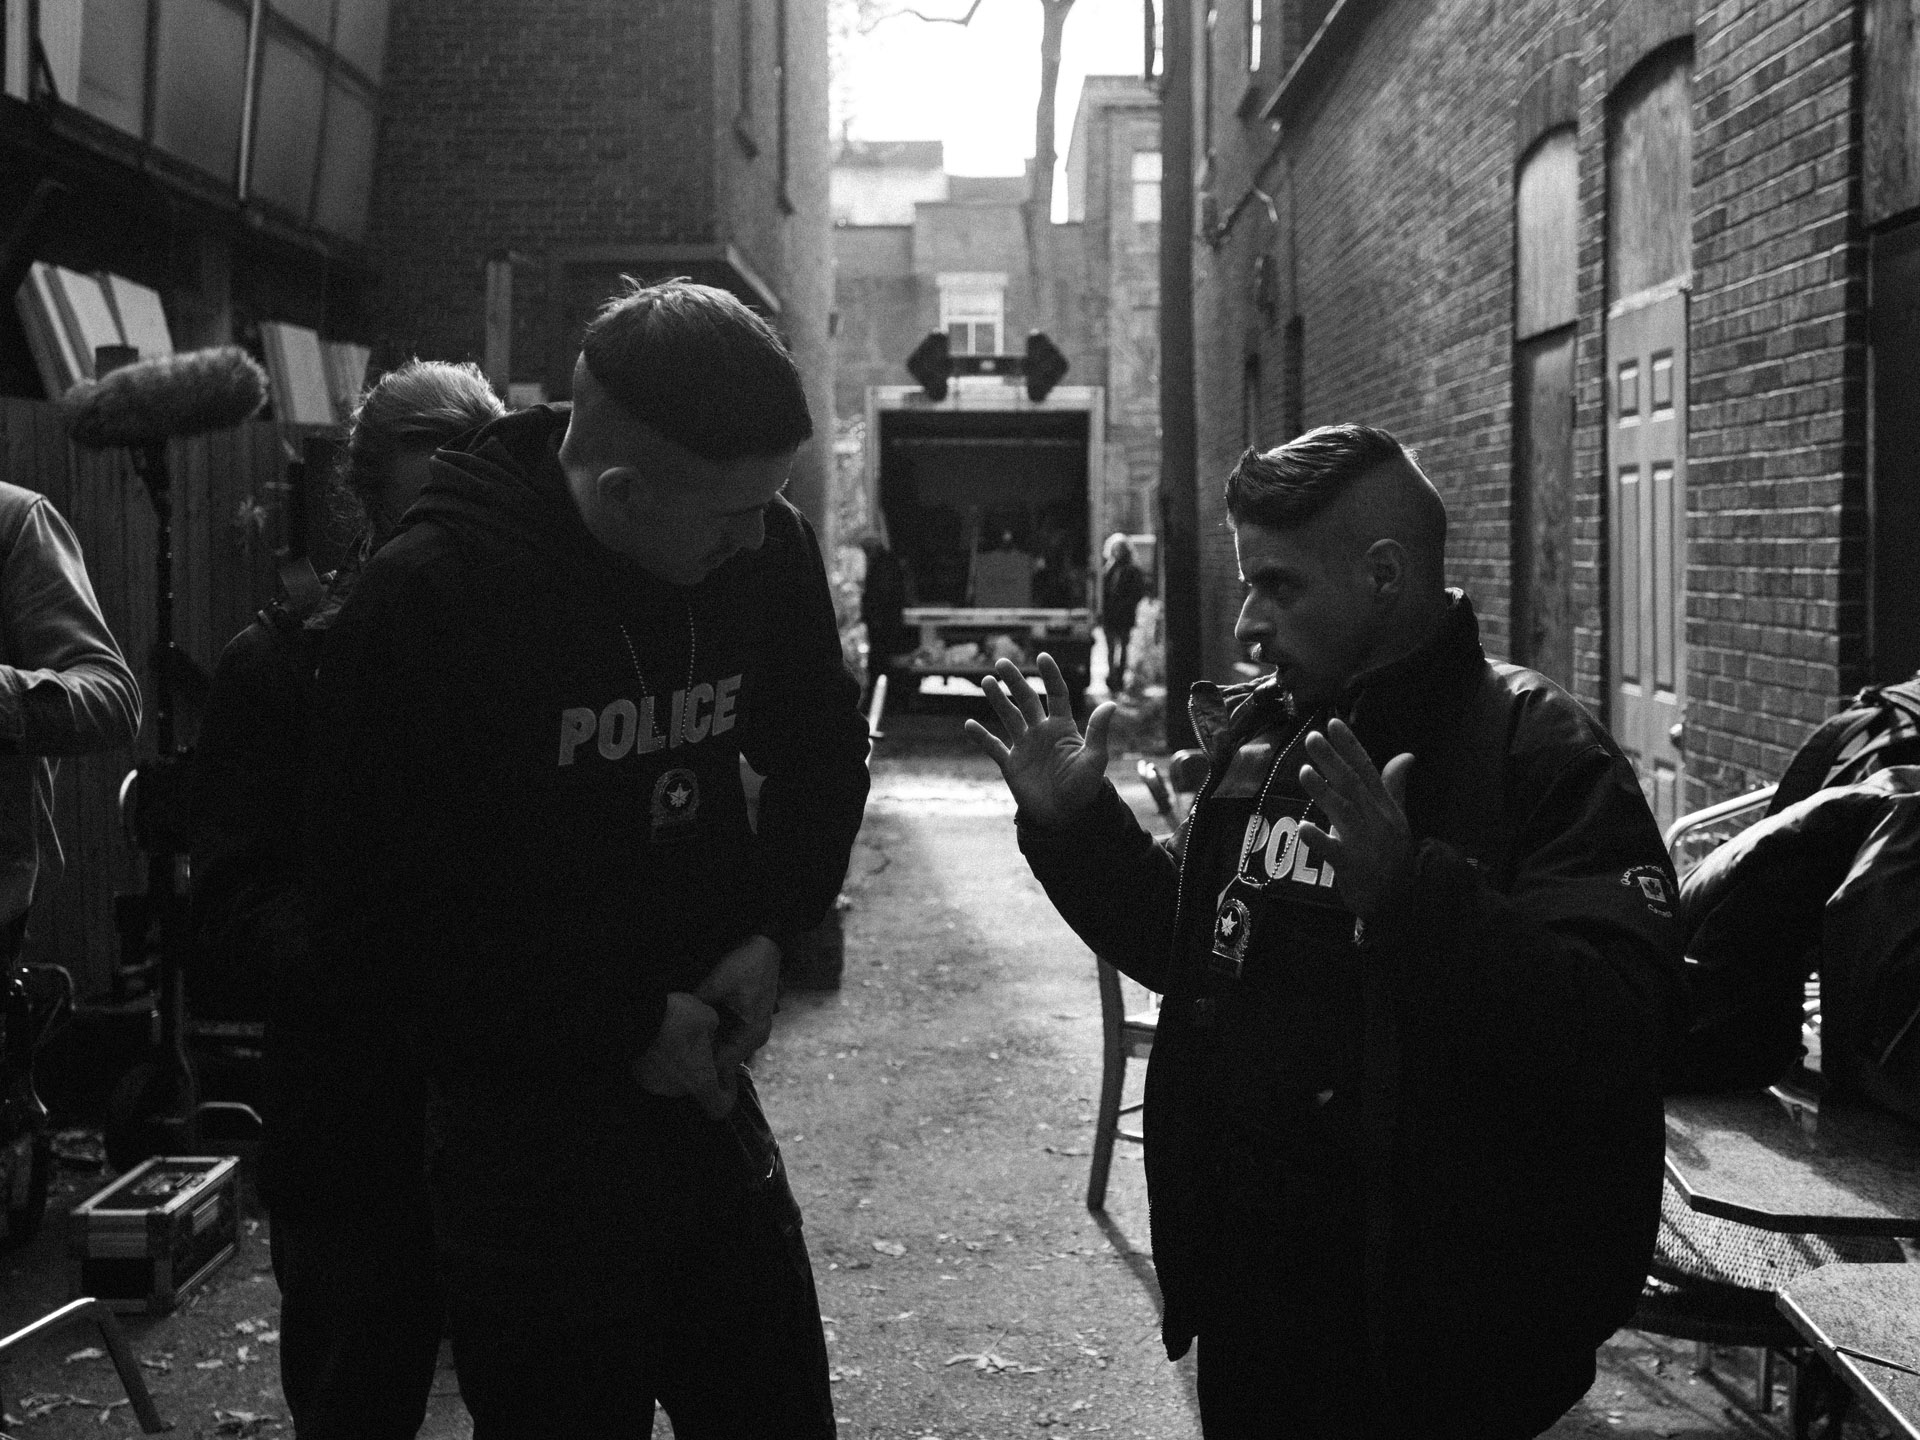 actors Hugolin Chevrette-Landesque and Emile Schneider dressed as cops talking in alley in behind the scenes for TV series La Loi C'est La Loi filmed by Les Gamins for TV5 Unis